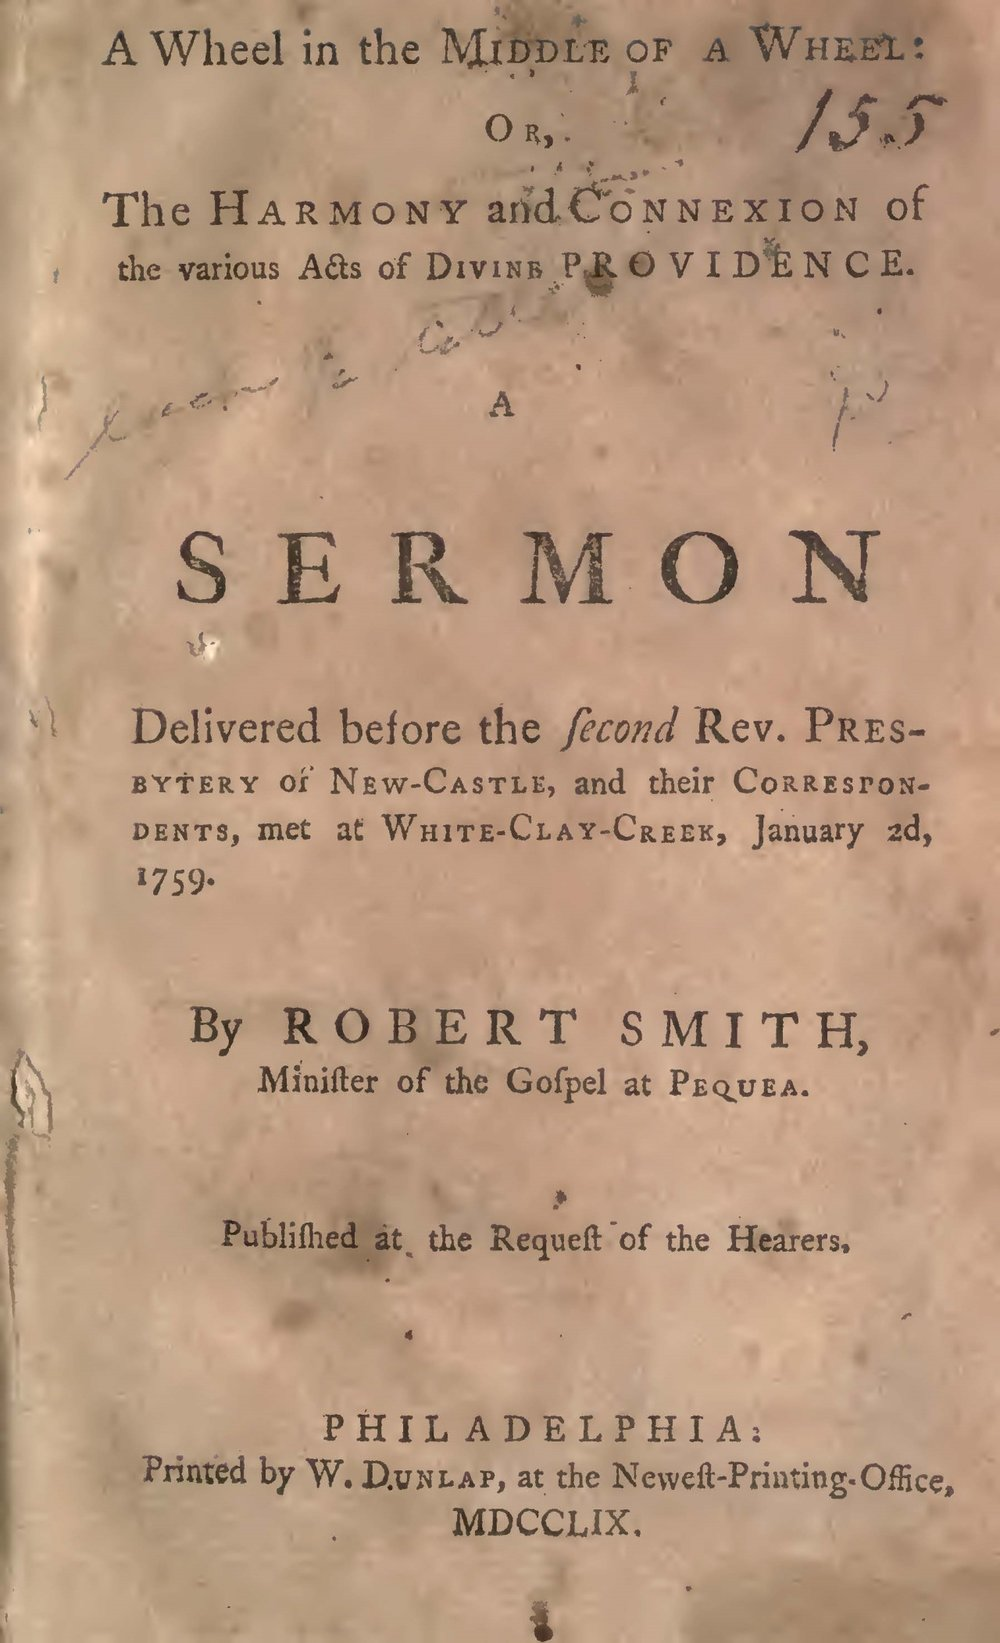 Smith, Robert, A Wheel in the Middle of a Wheel Title Page.jpg